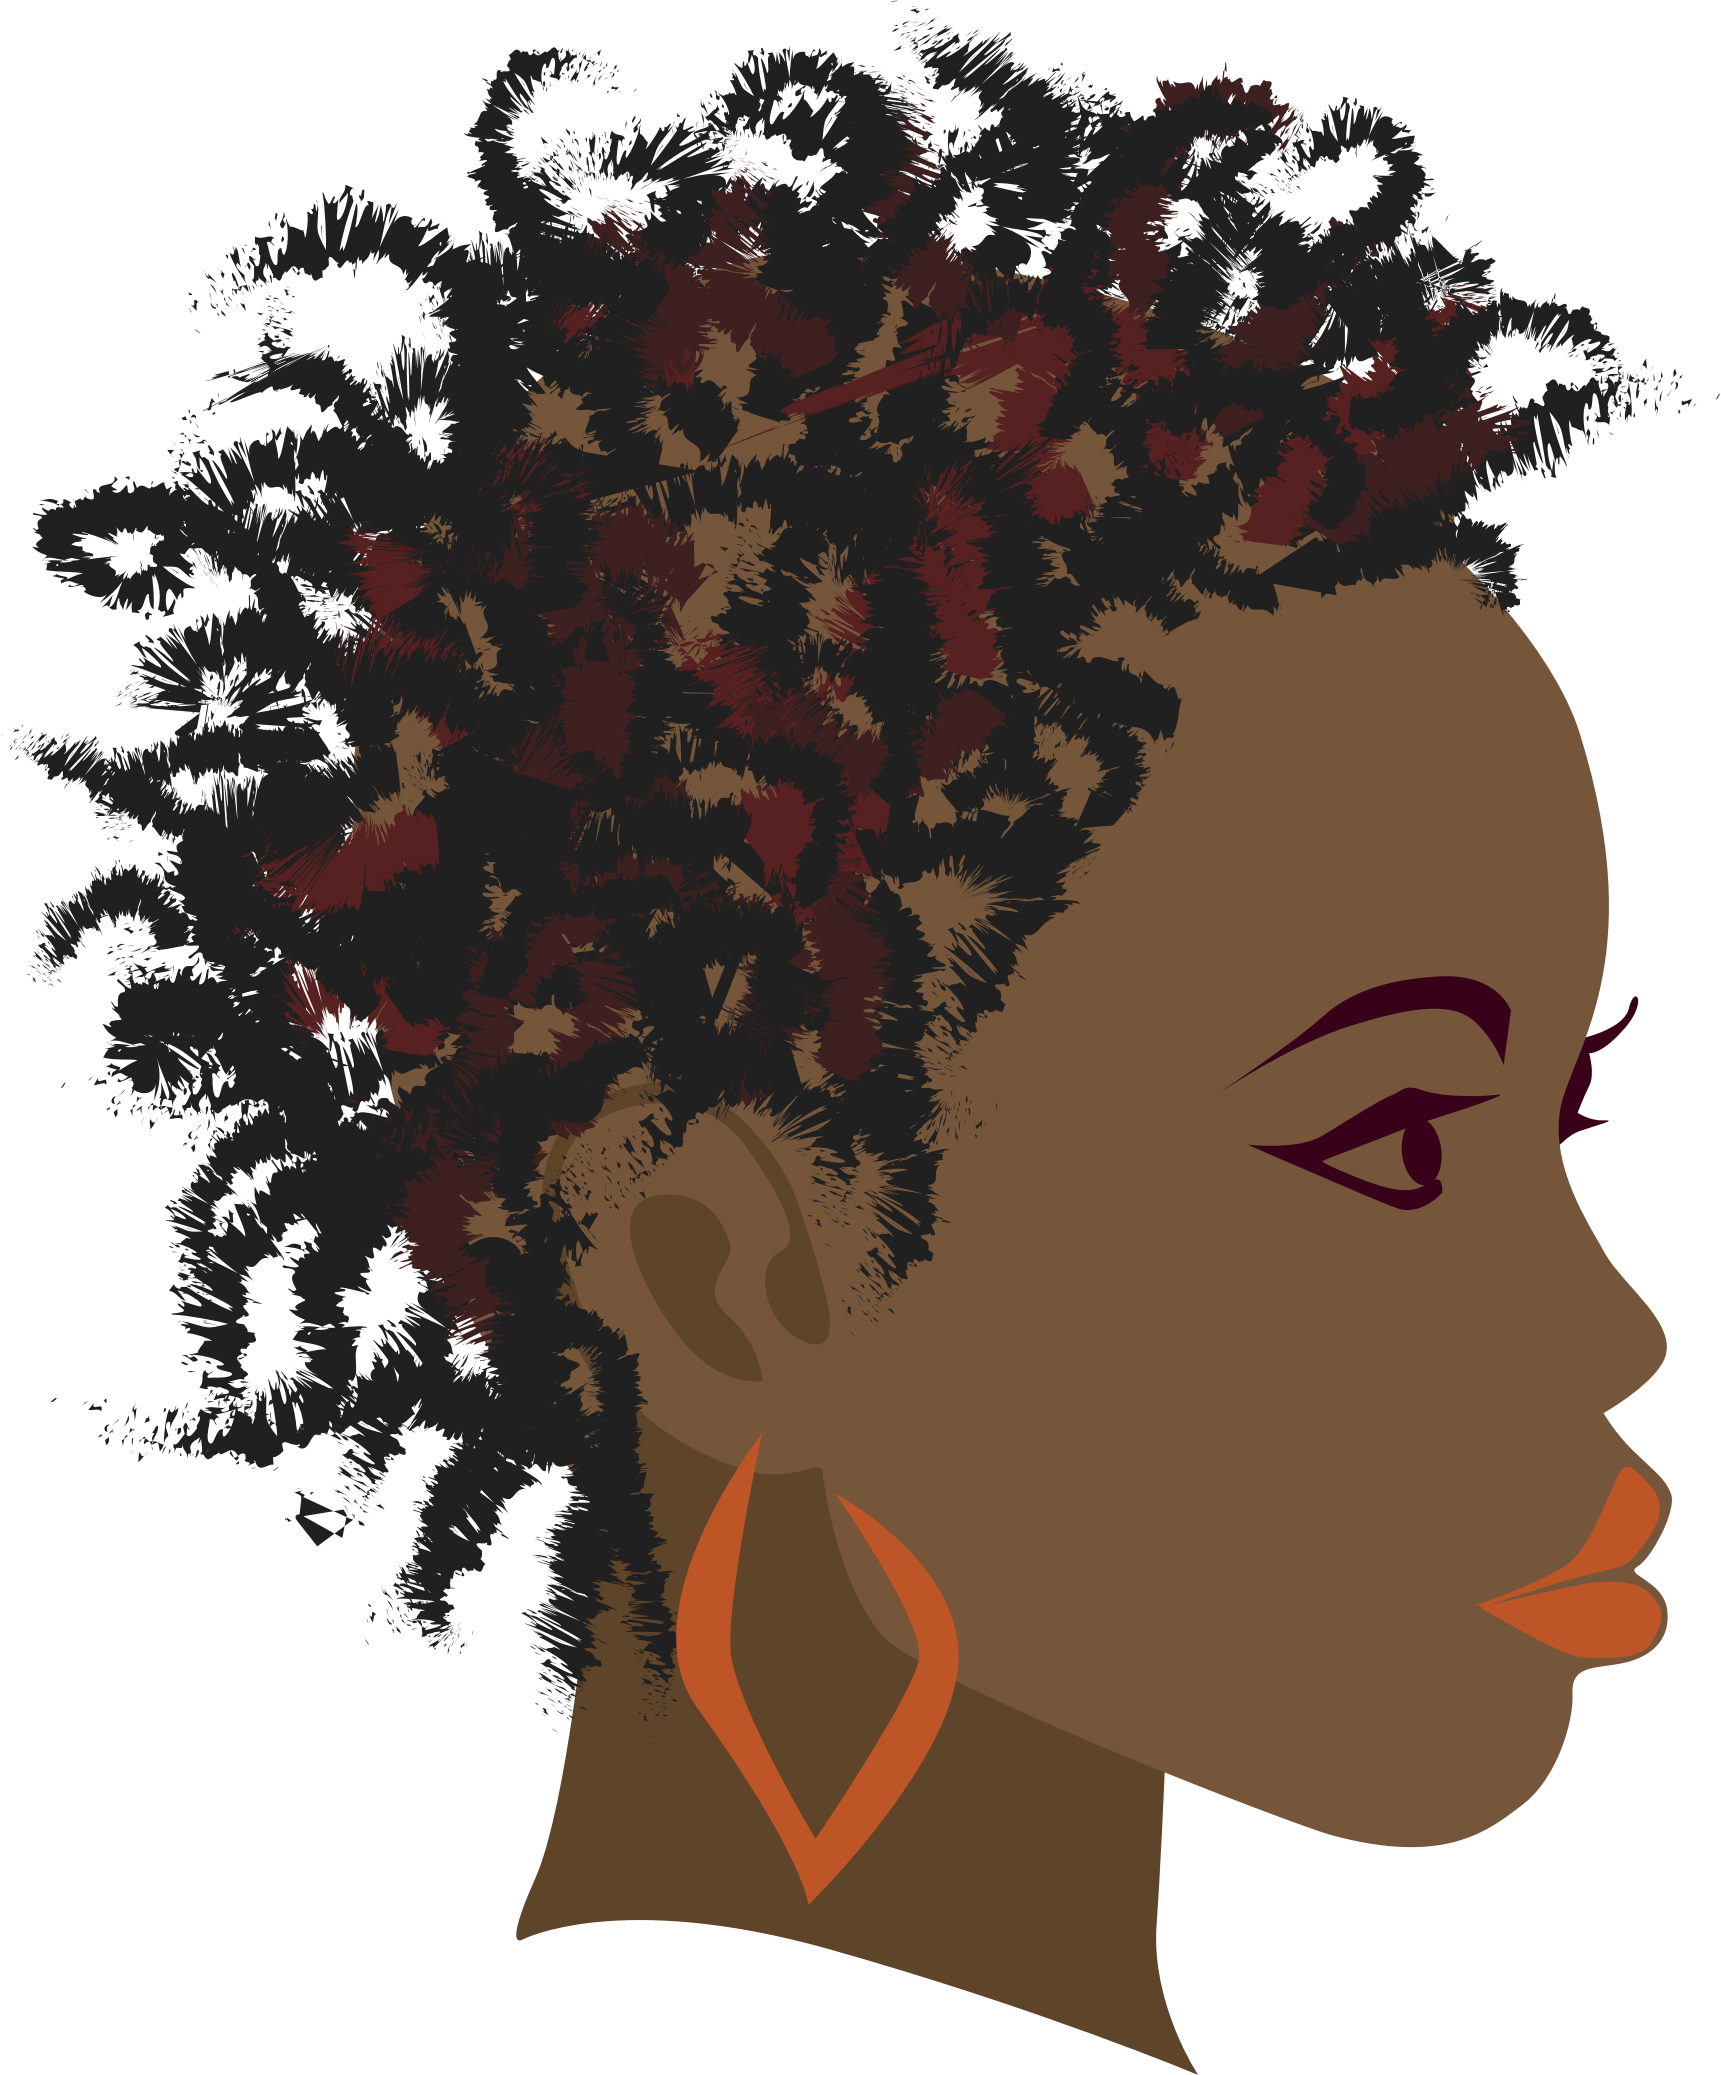 Africa clipart png. African girl big image